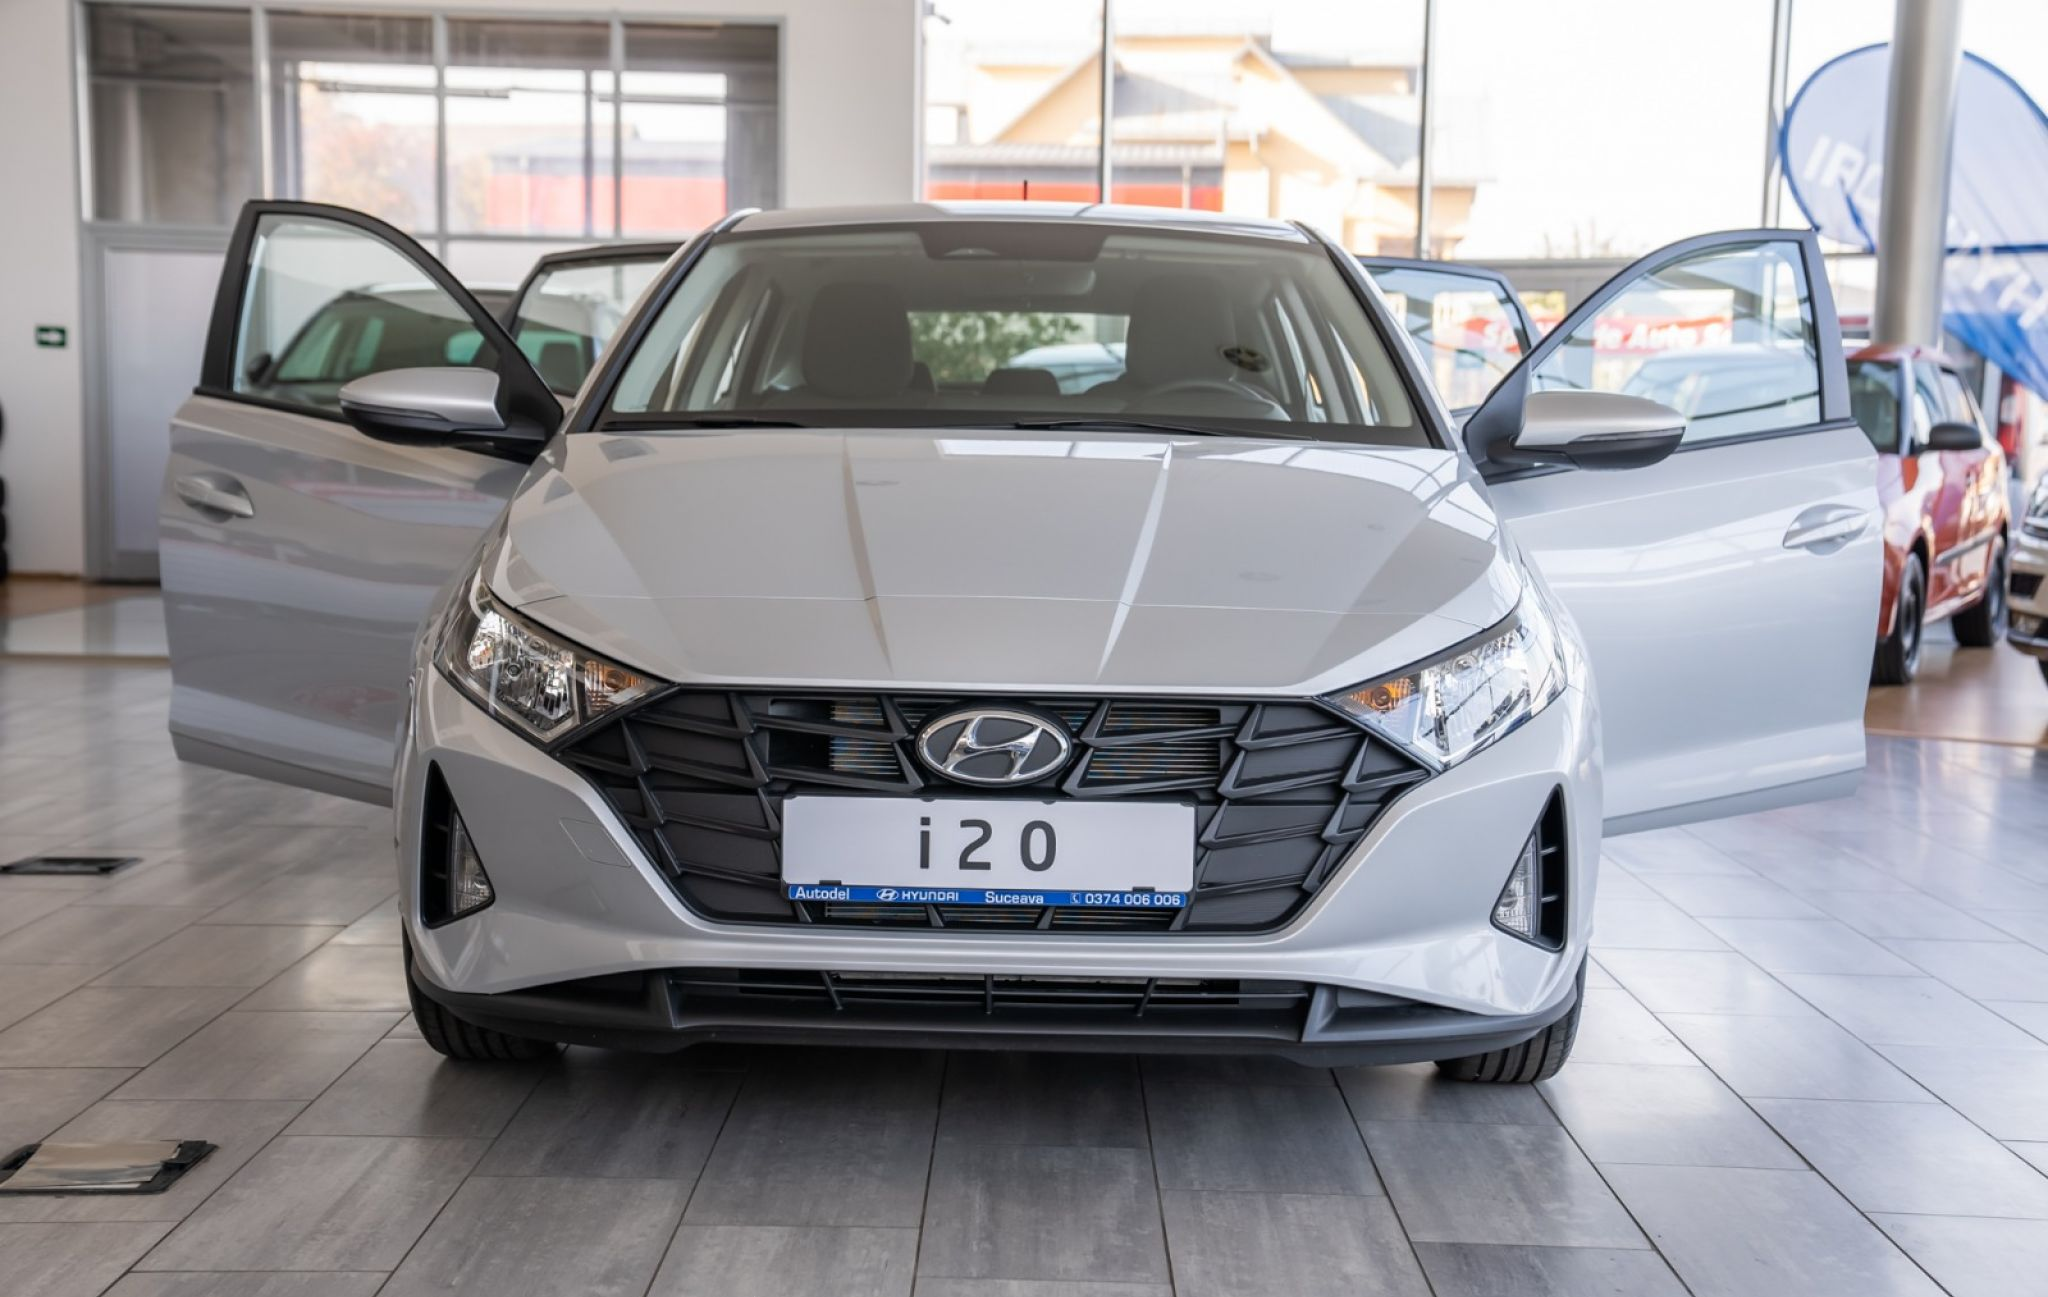 Hyundai i20 2020 Second Hand